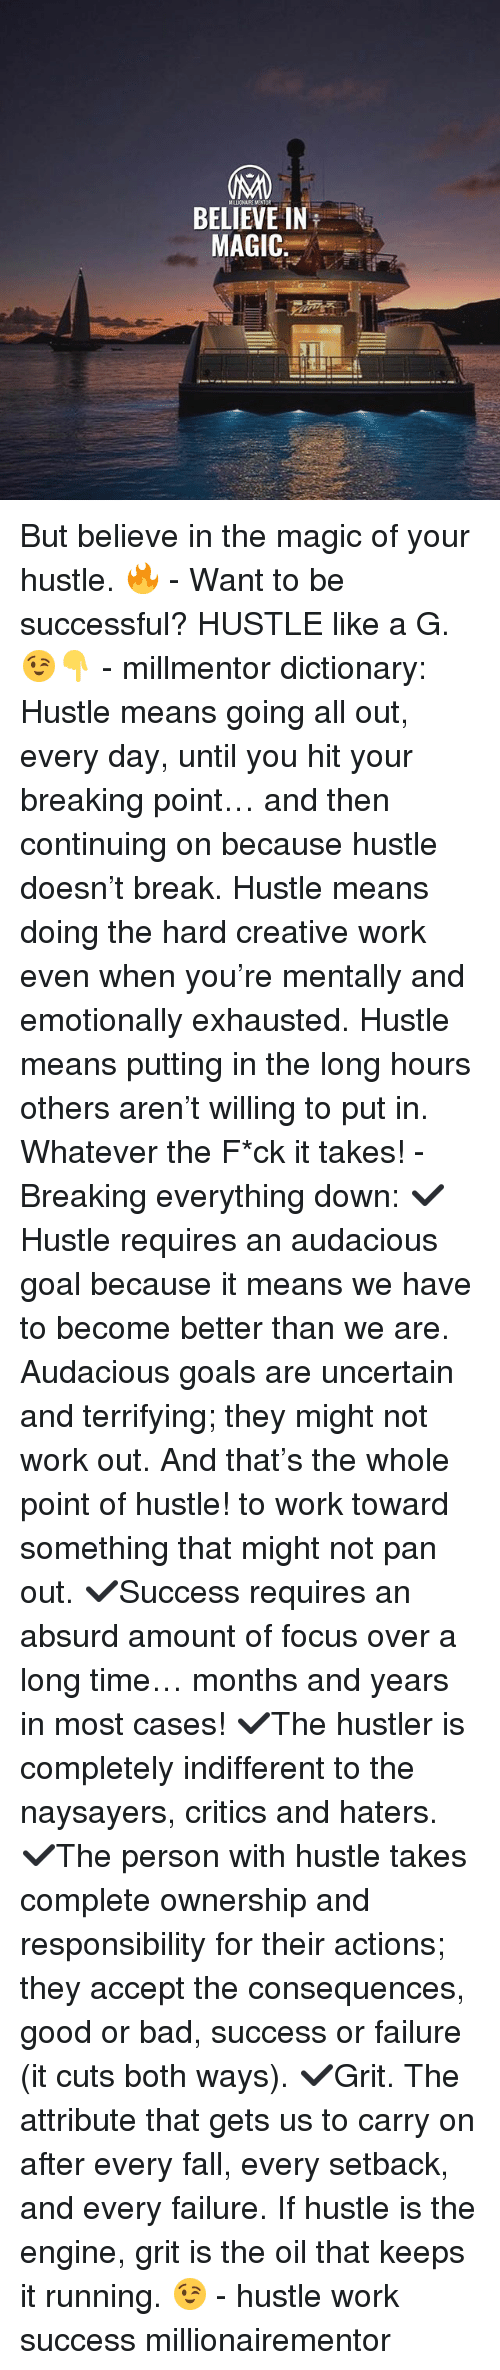 hustler: BELIEVE IN  MAGIC: But believe in the magic of your hustle. 🔥 - Want to be successful? HUSTLE like a G. 😉👇 - millmentor dictionary: Hustle means going all out, every day, until you hit your breaking point… and then continuing on because hustle doesn't break. Hustle means doing the hard creative work even when you're mentally and emotionally exhausted. Hustle means putting in the long hours others aren't willing to put in. Whatever the F*ck it takes! - Breaking everything down: ✔️Hustle requires an audacious goal because it means we have to become better than we are. Audacious goals are uncertain and terrifying; they might not work out. And that's the whole point of hustle! to work toward something that might not pan out. ✔️Success requires an absurd amount of focus over a long time… months and years in most cases! ✔️The hustler is completely indifferent to the naysayers, critics and haters. ✔️The person with hustle takes complete ownership and responsibility for their actions; they accept the consequences, good or bad, success or failure (it cuts both ways). ✔️Grit. The attribute that gets us to carry on after every fall, every setback, and every failure. If hustle is the engine, grit is the oil that keeps it running. 😉 - hustle work success millionairementor